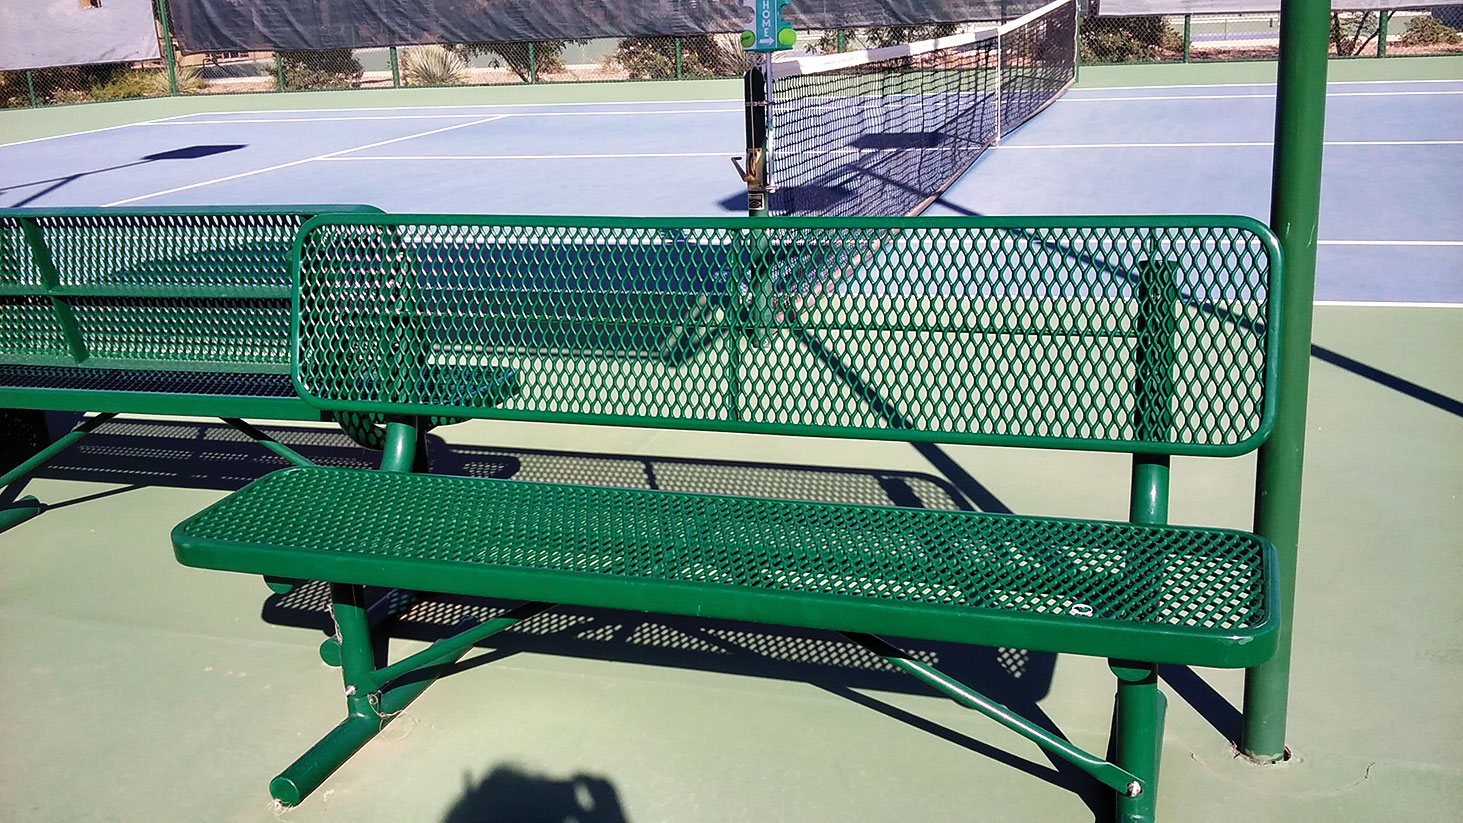 Four new benches purchased by the SunBird Tennis Club.